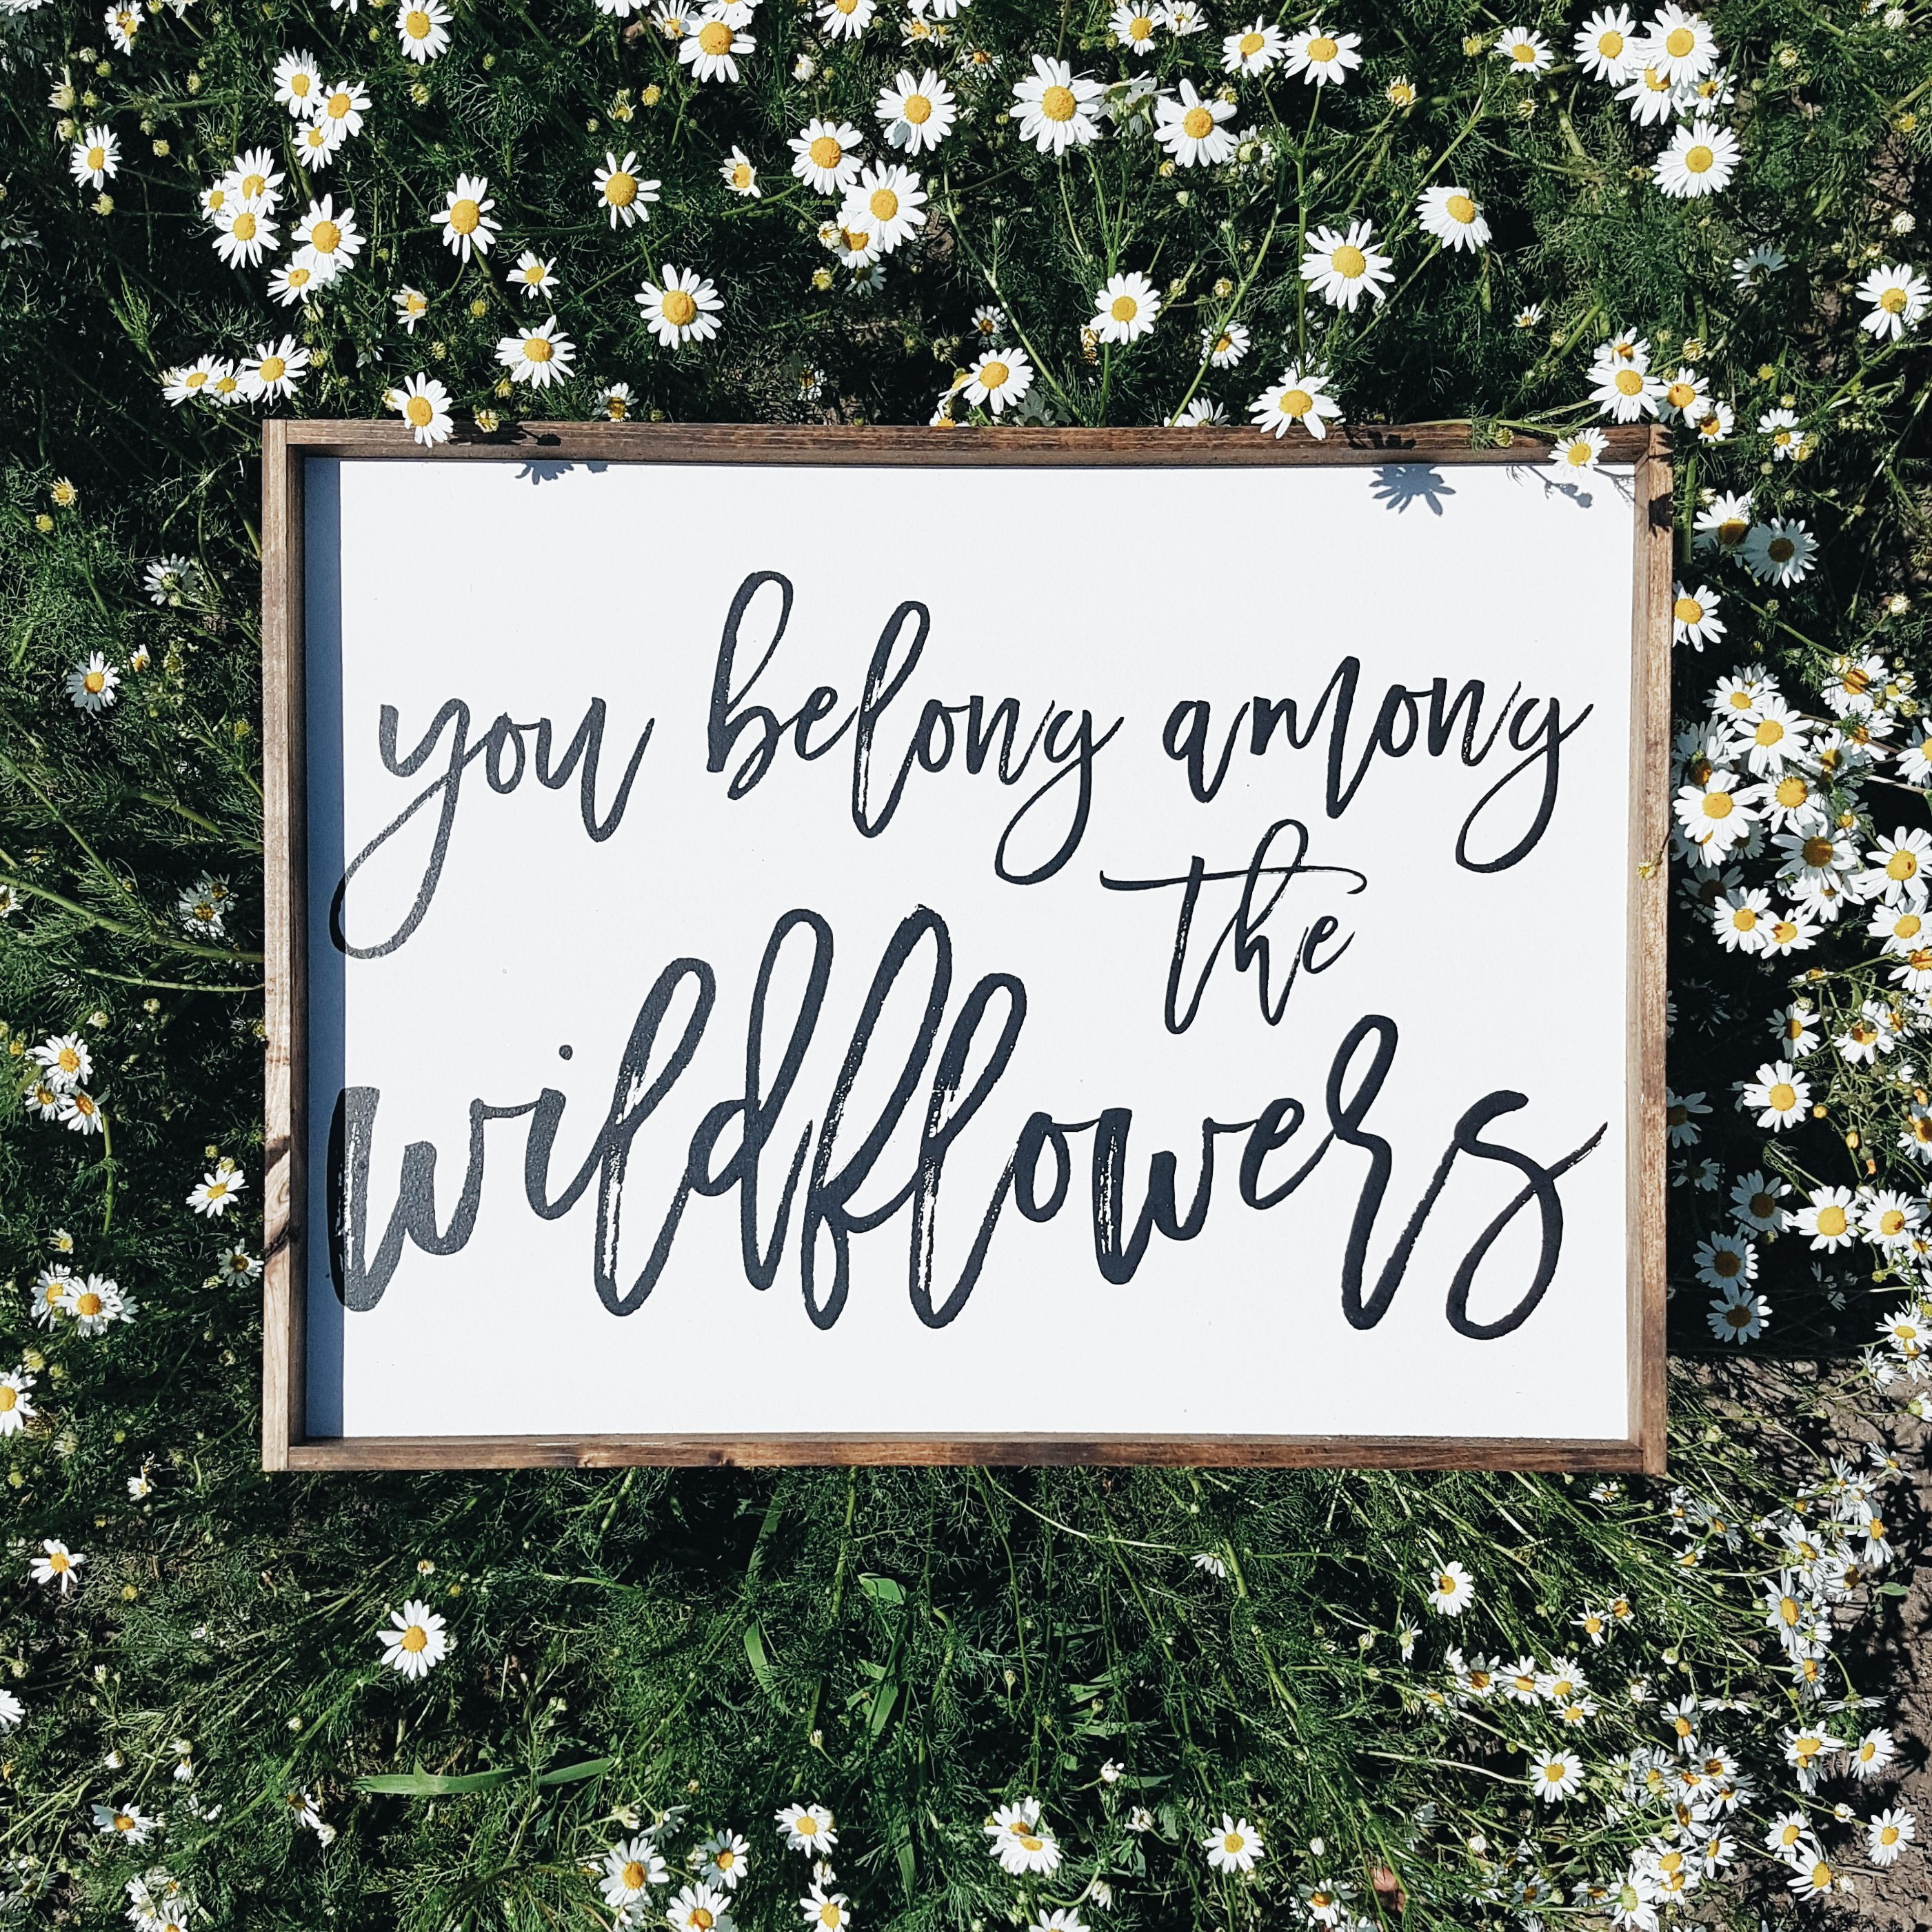 home decor eclectic #homedecor farmhouse signs, rustic signs, fixer upper style, home decor, rustic decor, inspiring quotes, wood sign sayings, magnolia market, rustic signs, boho, boho style, eclectic living, living room inspiration, joanna gaines decor